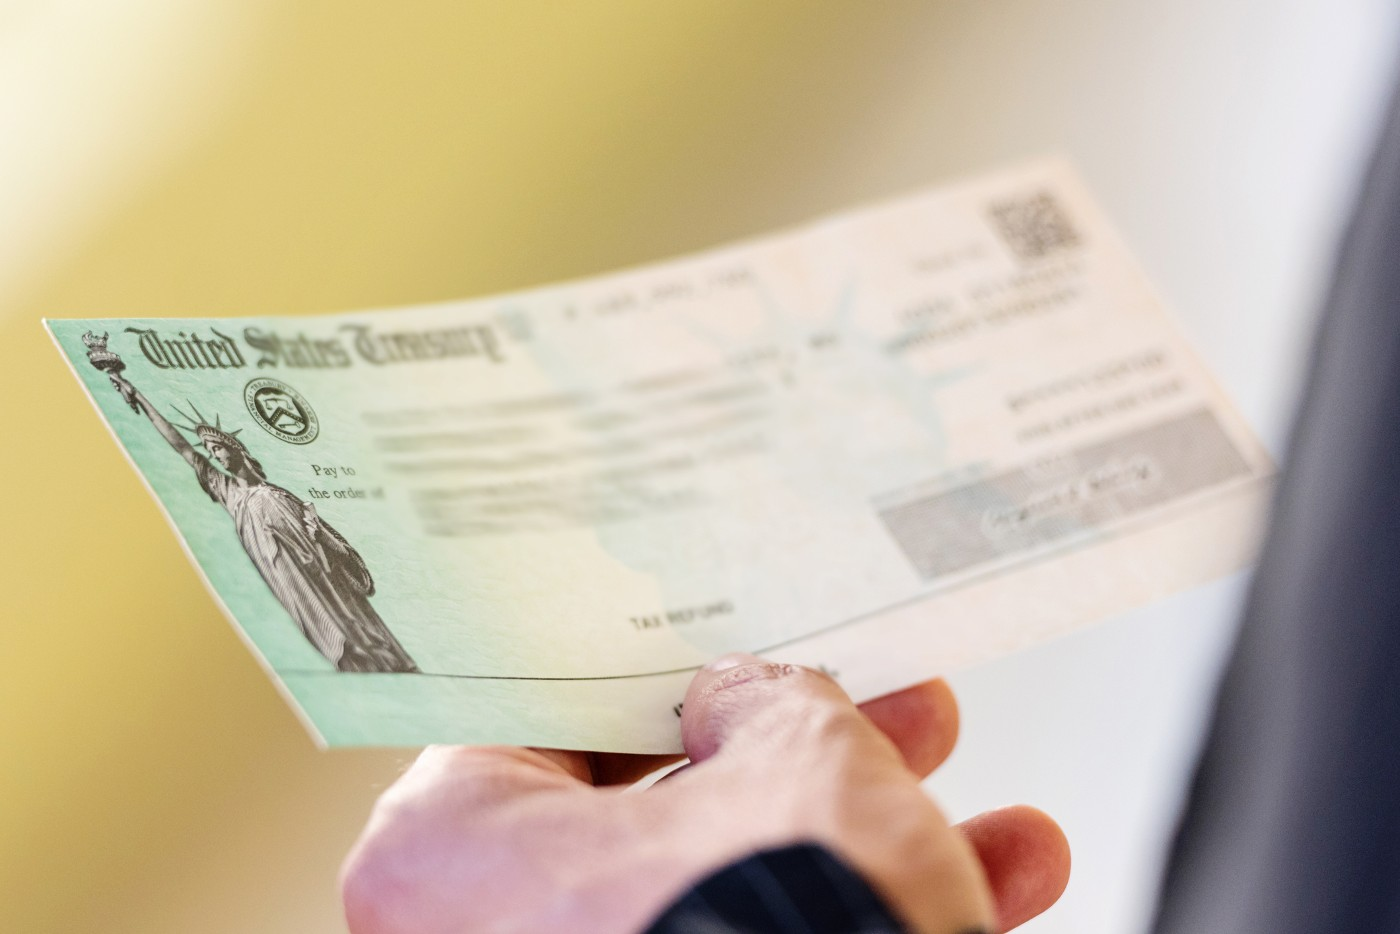 https://tickertapecdn.tdameritrade.com/assets/images/pages/md/Person holding a check: 5 ideas for tax refund cash